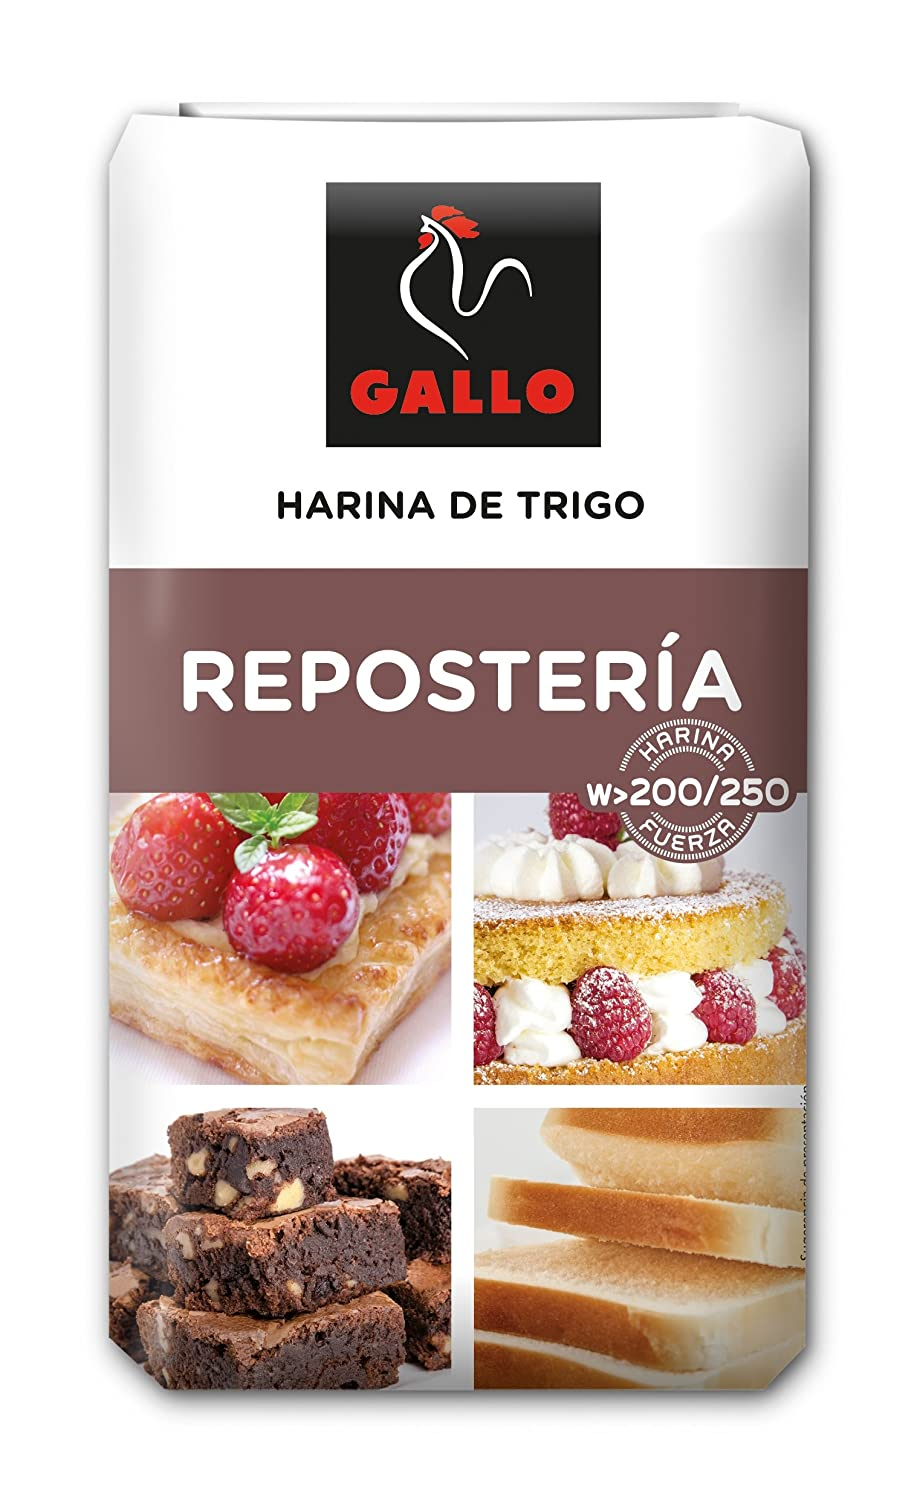 Gallo harina reposteria paquete 1000 gr. - [Pack de 5]: Amazon.es ...